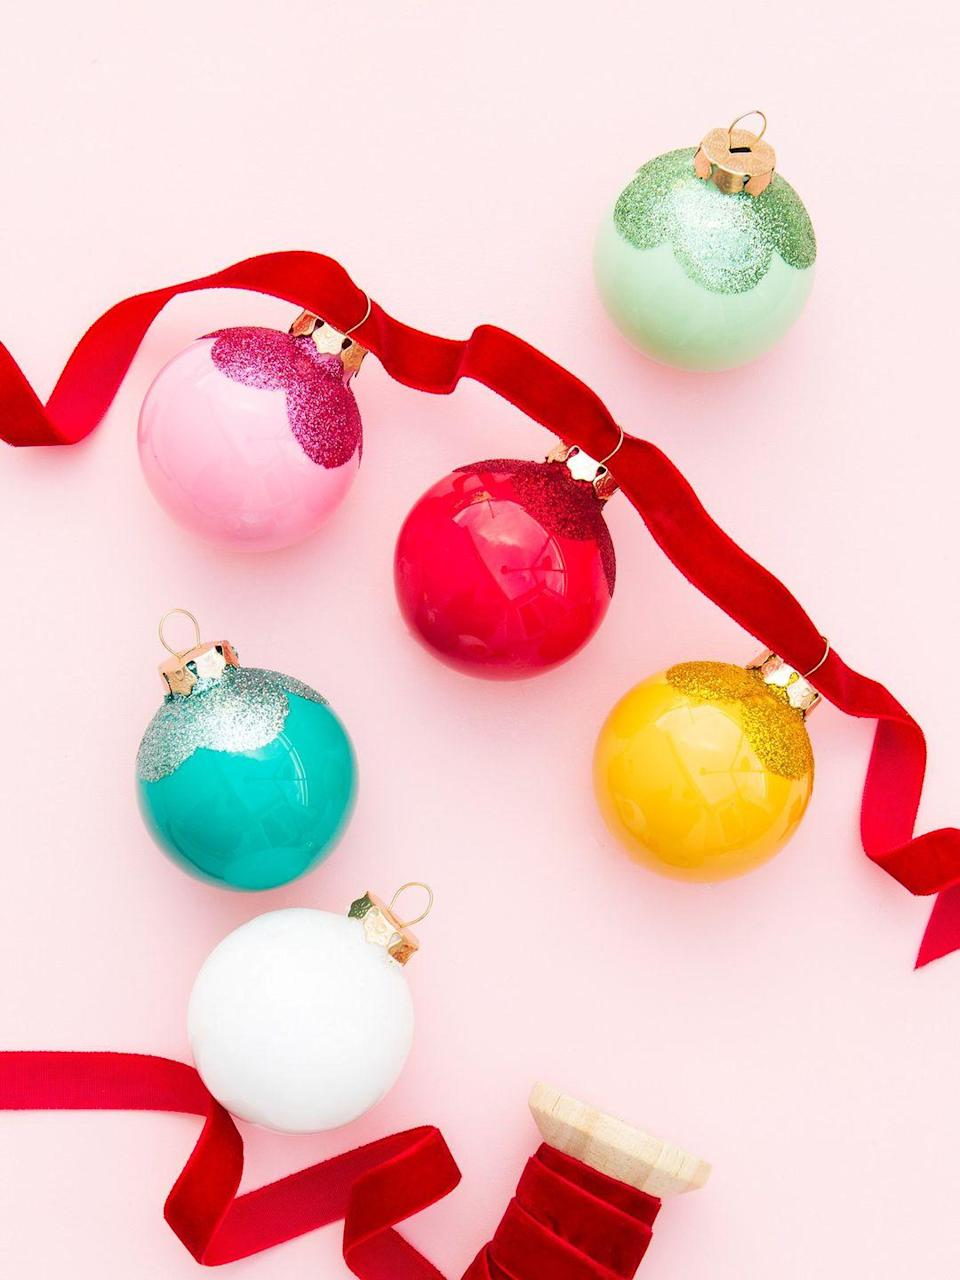 """<p>Glue, glitter, and blank ornaments in a variety of colors make this DIY a fairly basic one–yet still full of fun.</p><p><span>Get the tutorial at</span> <a href=""""https://sarahhearts.com/diy-glitter-scallop-ornaments/"""" rel=""""nofollow noopener"""" target=""""_blank"""" data-ylk=""""slk:Sarah Hearts"""" class=""""link rapid-noclick-resp"""">Sarah Hearts</a><span>.</span><br></p>"""